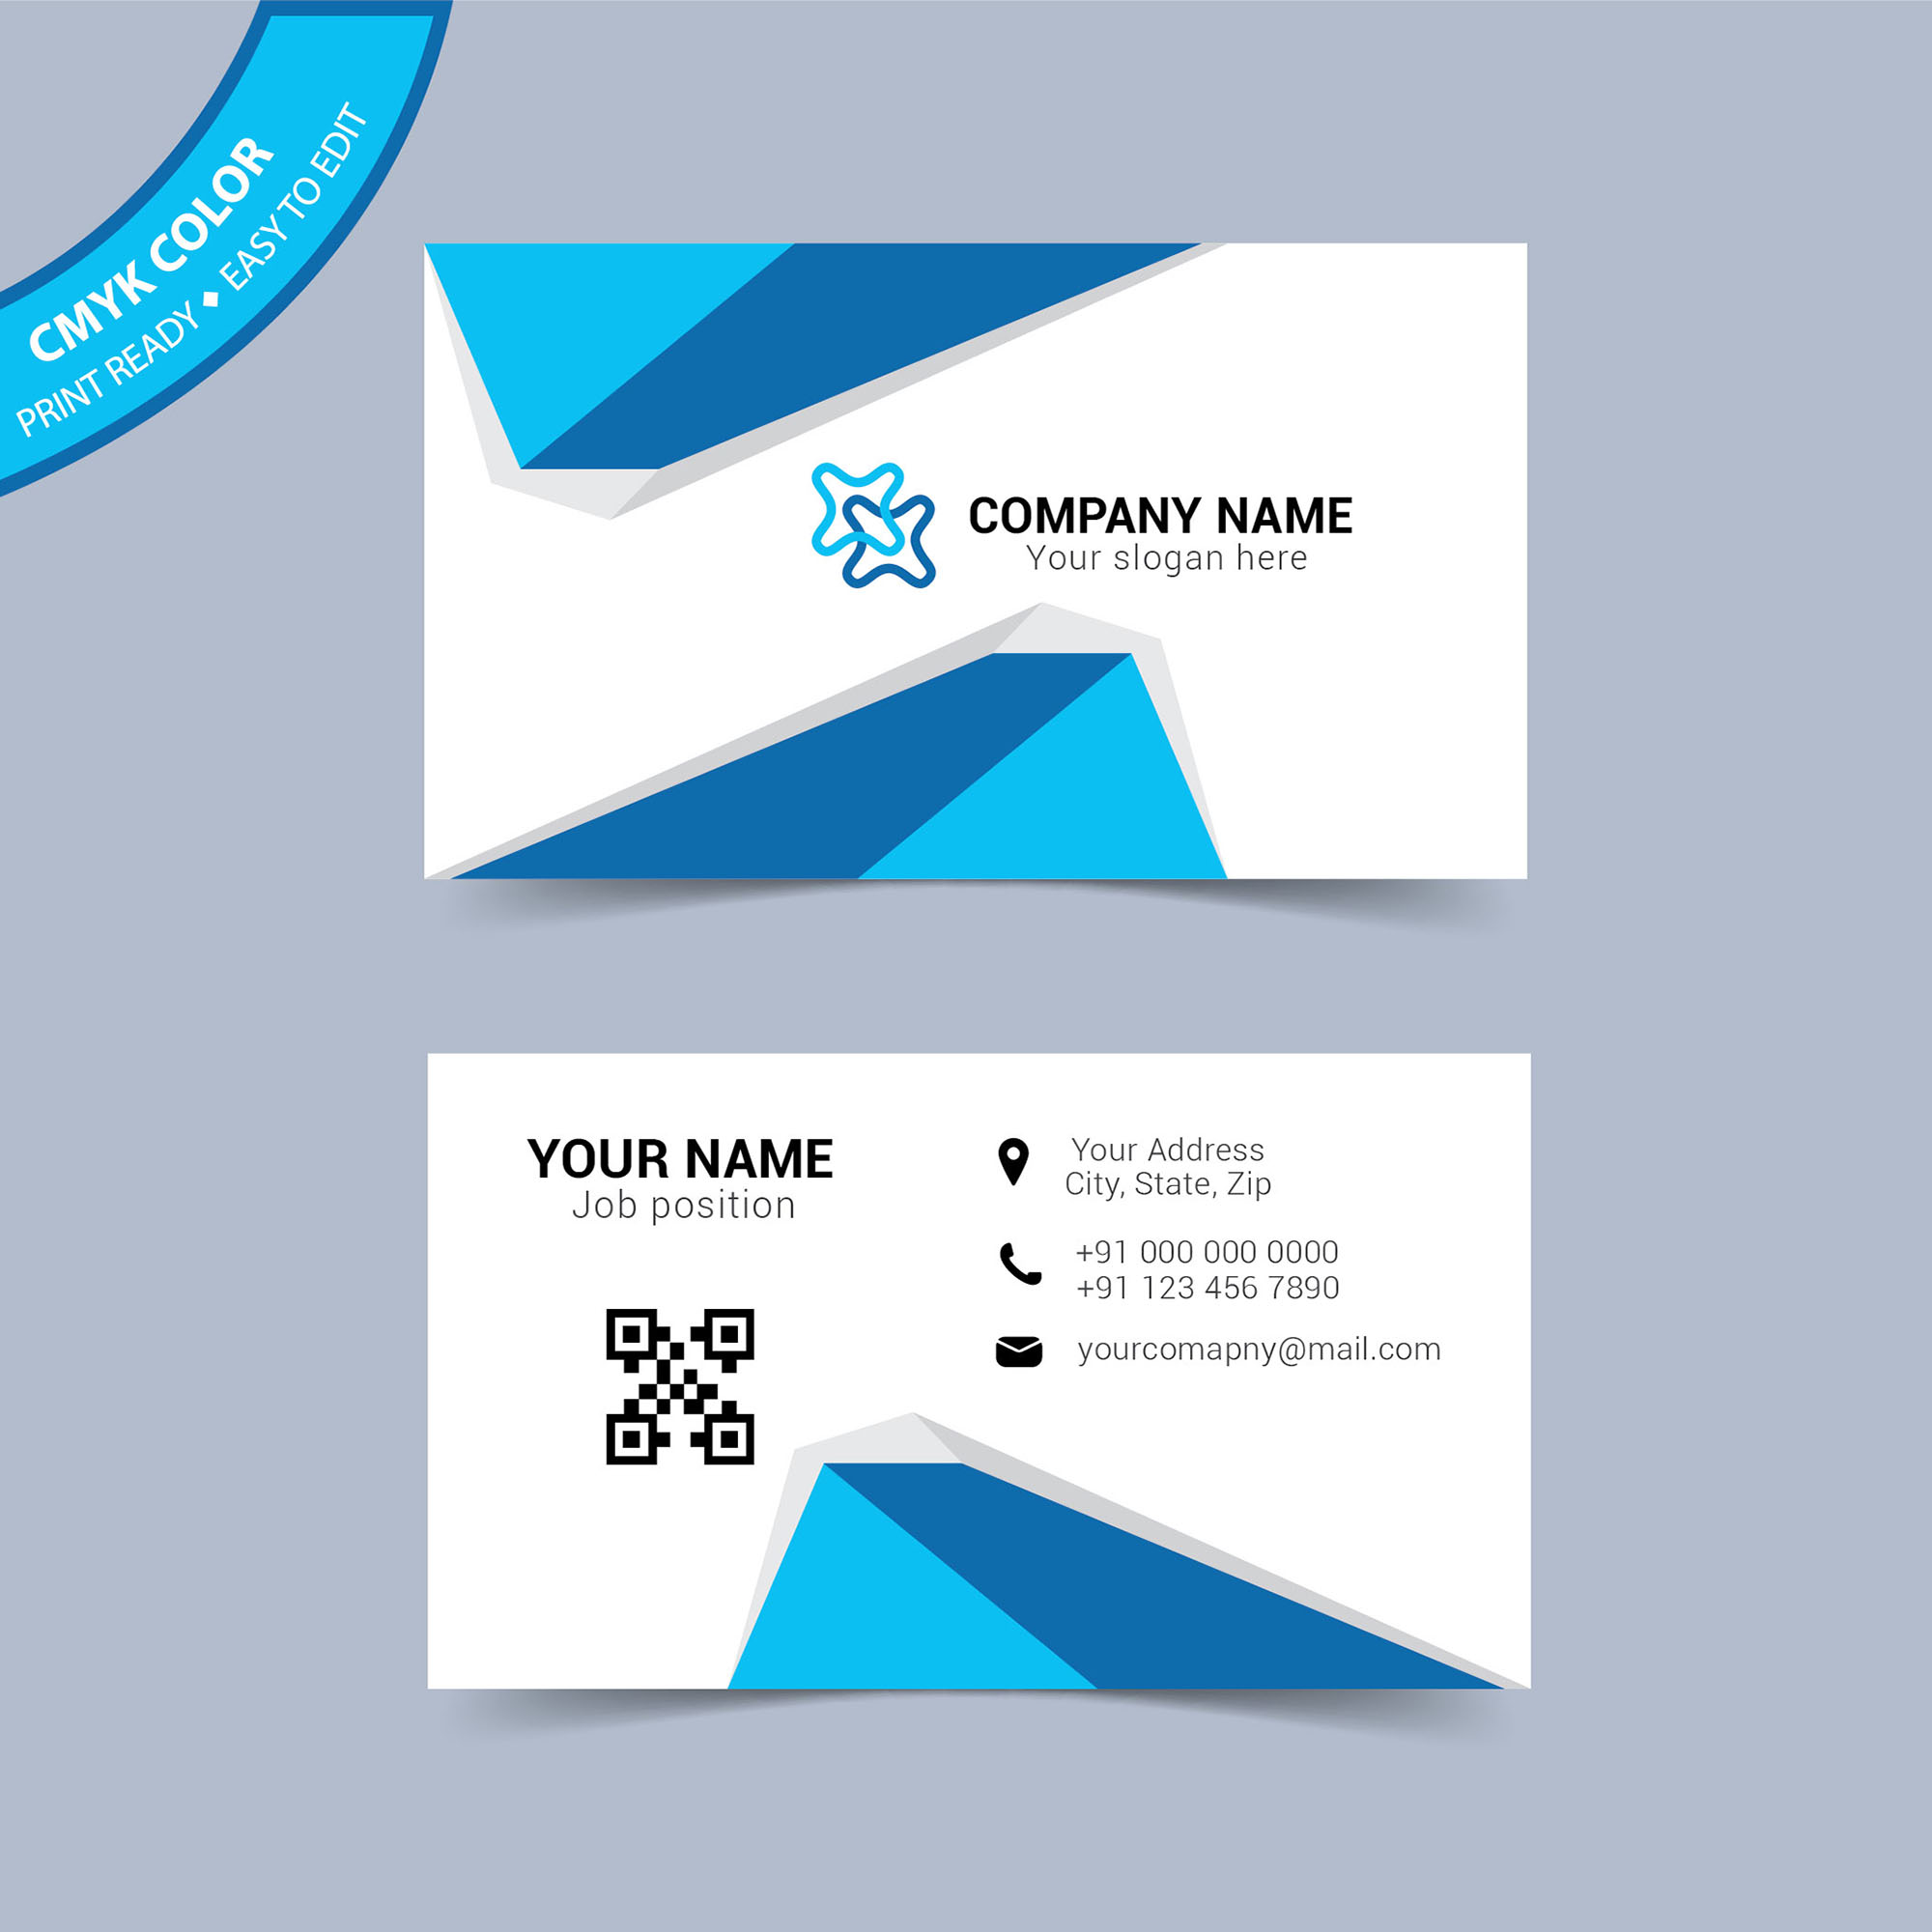 Business Card Layout Template Free Download Wisxicom - Business card layout template